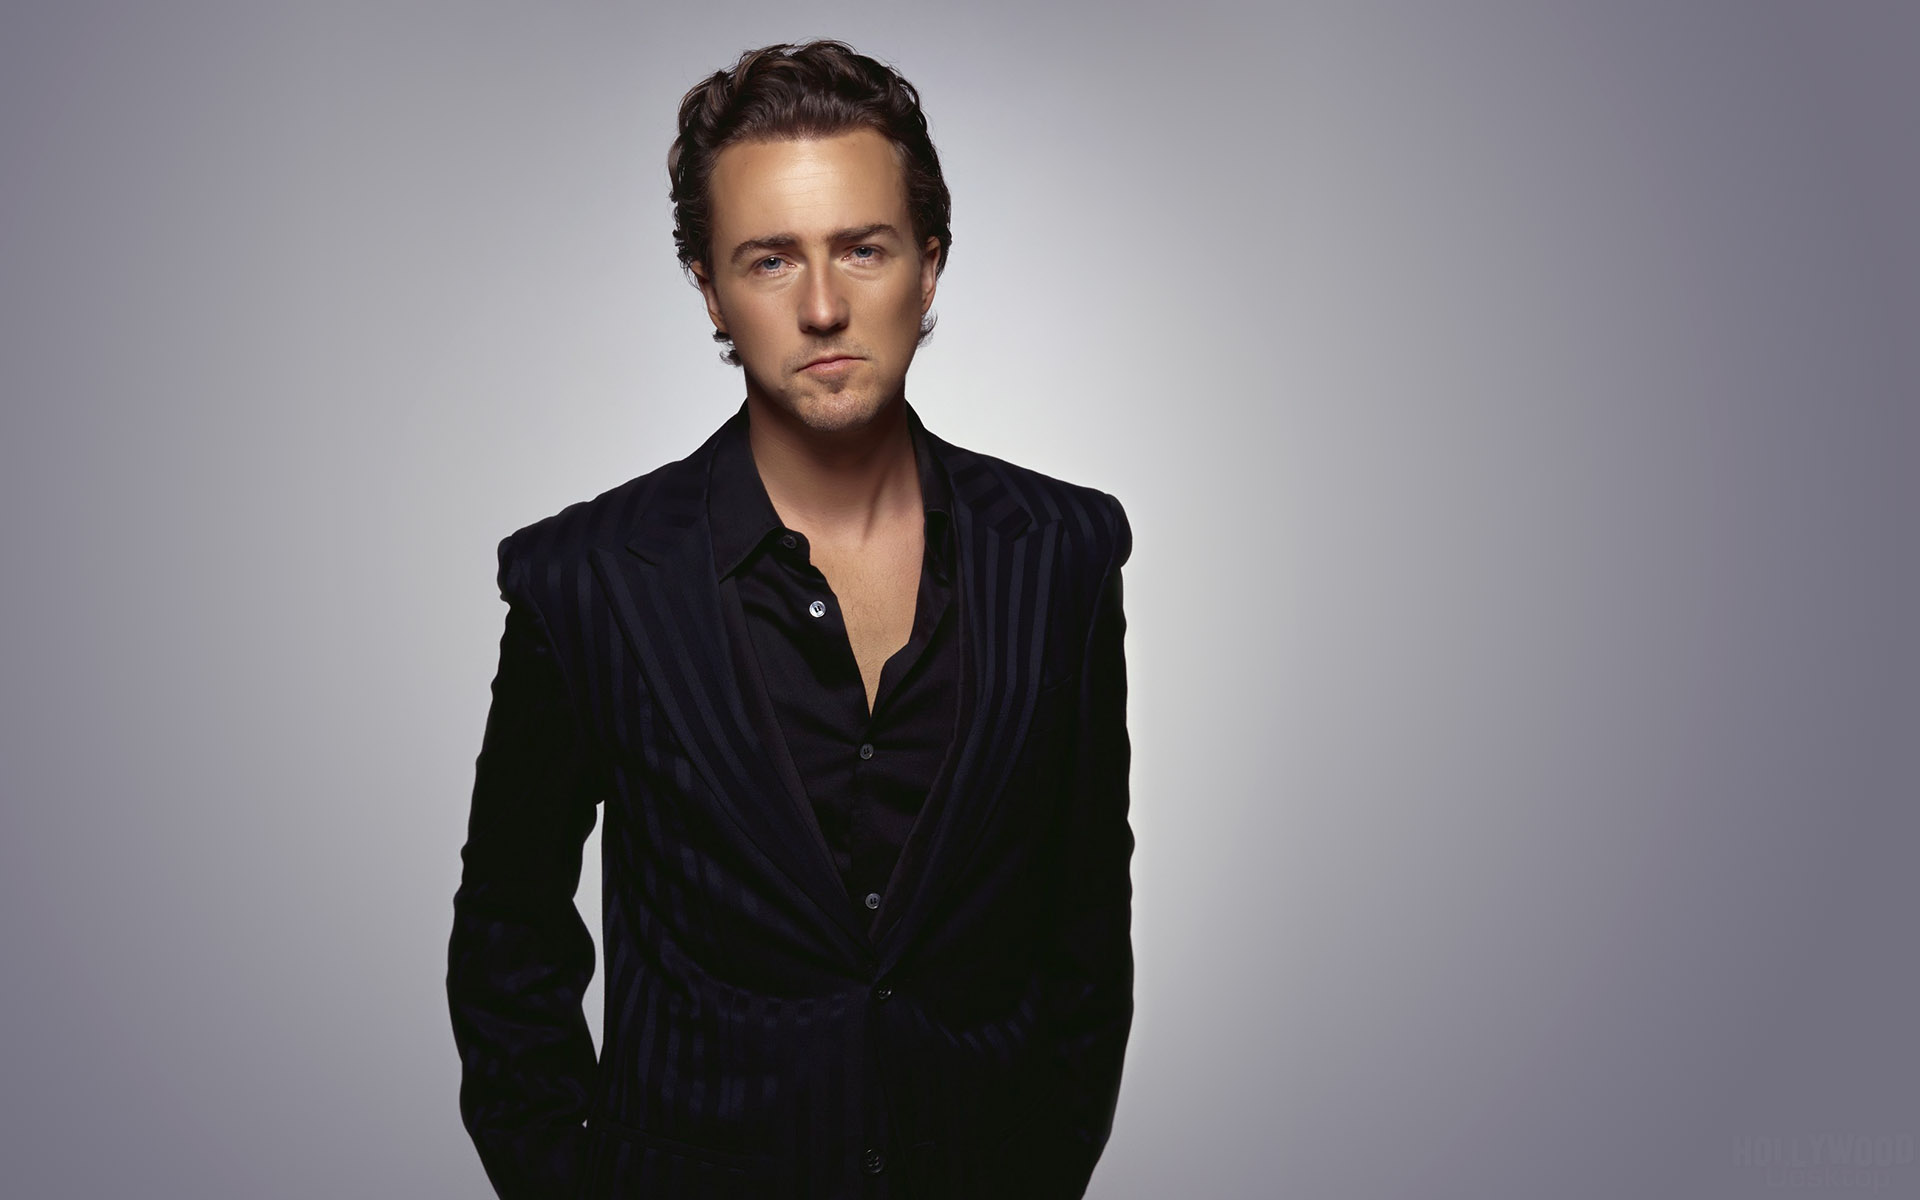 Edward Norton Action HD Wallpapers Free Download